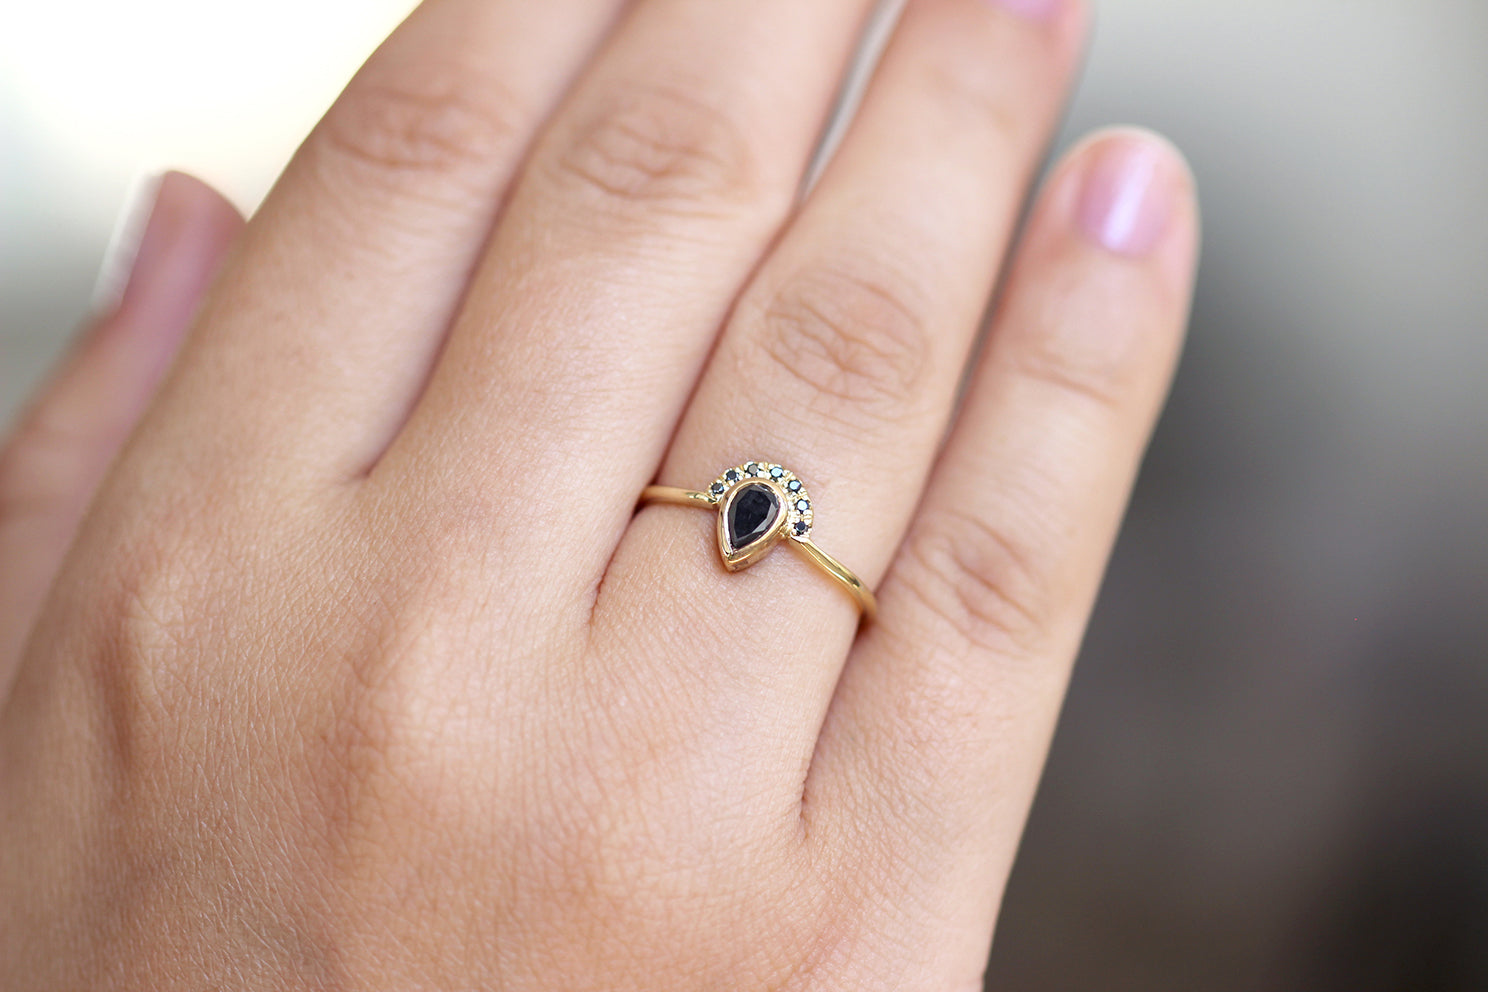 Black Pear Diamond Engagement Ring with Half Diamond Halo alternate angle on hand